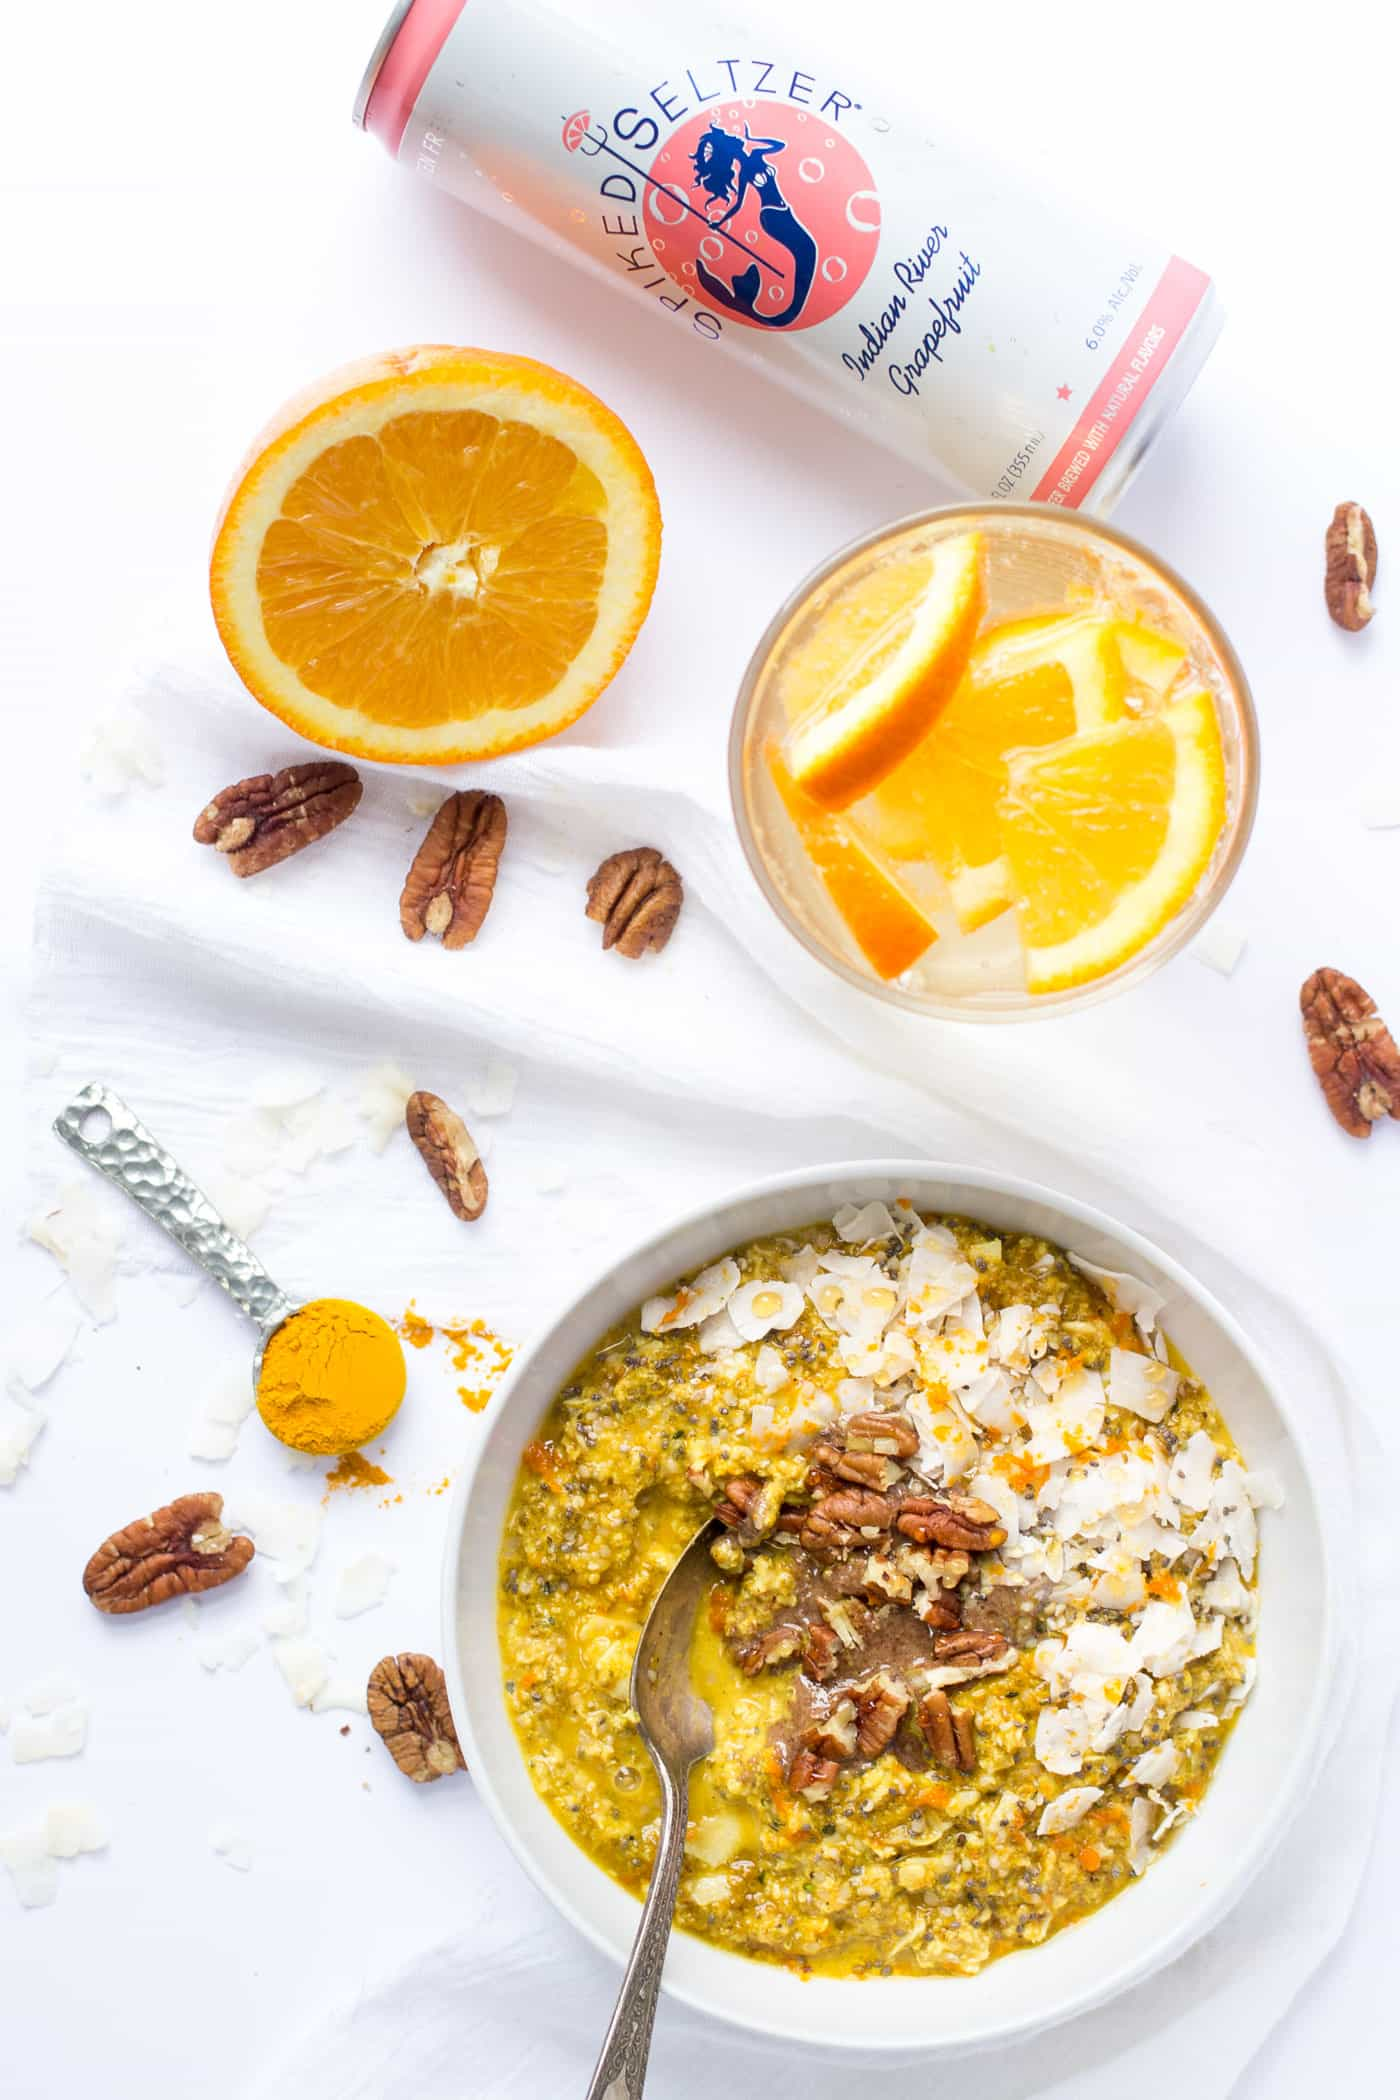 The ultimate brunch -- Orange Turmeric Overnight Quinoa with a SpikedSeltzer on the side (gf + vegan)